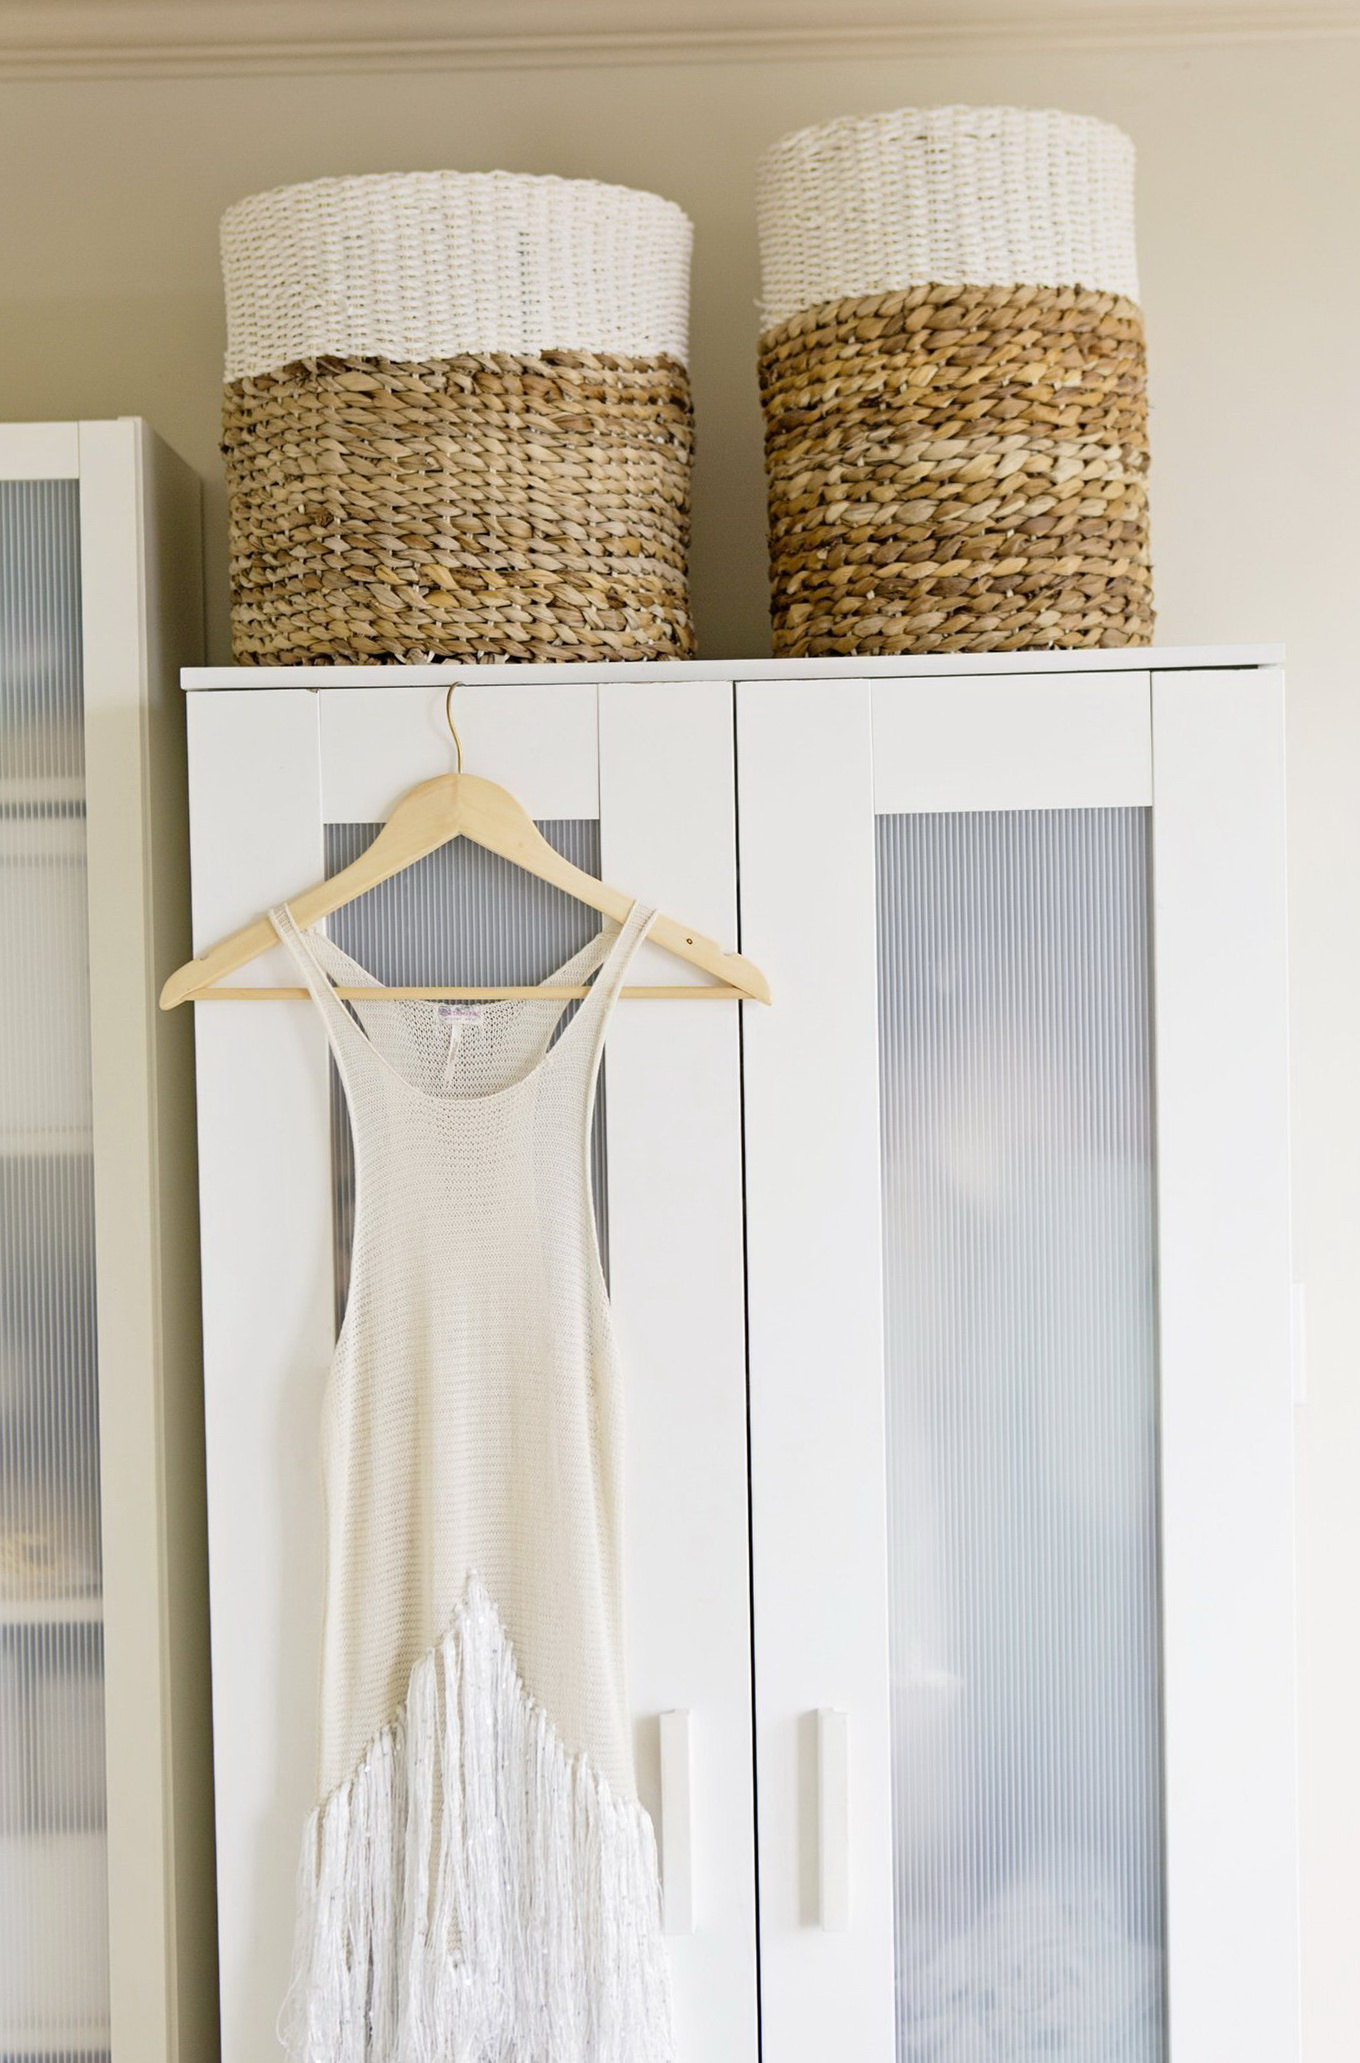 Extra closet storage clearwater fl home design ideas for Extra closet storage